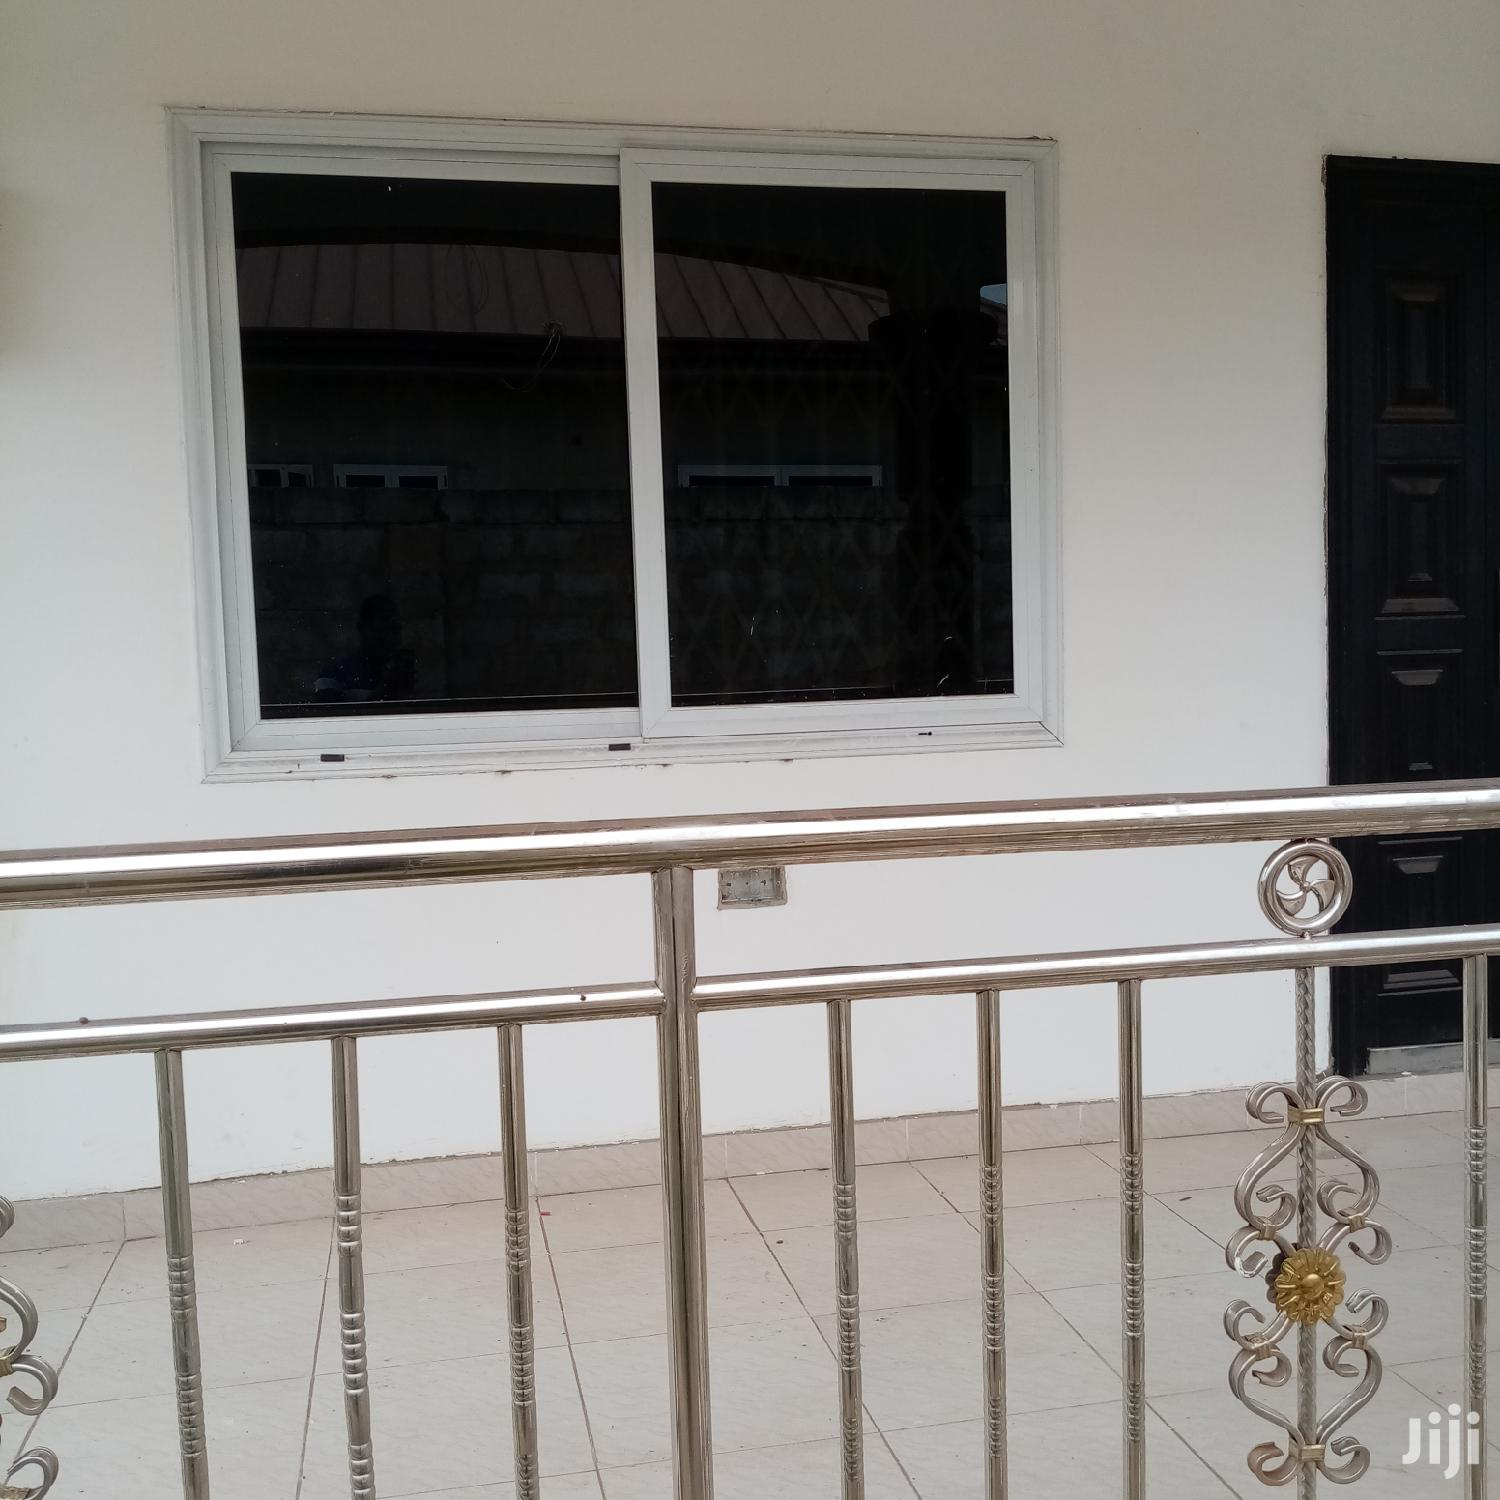 Aluminium Glass Window And Stainless Balustrade | Windows for sale in Tema Metropolitan, Greater Accra, Ghana